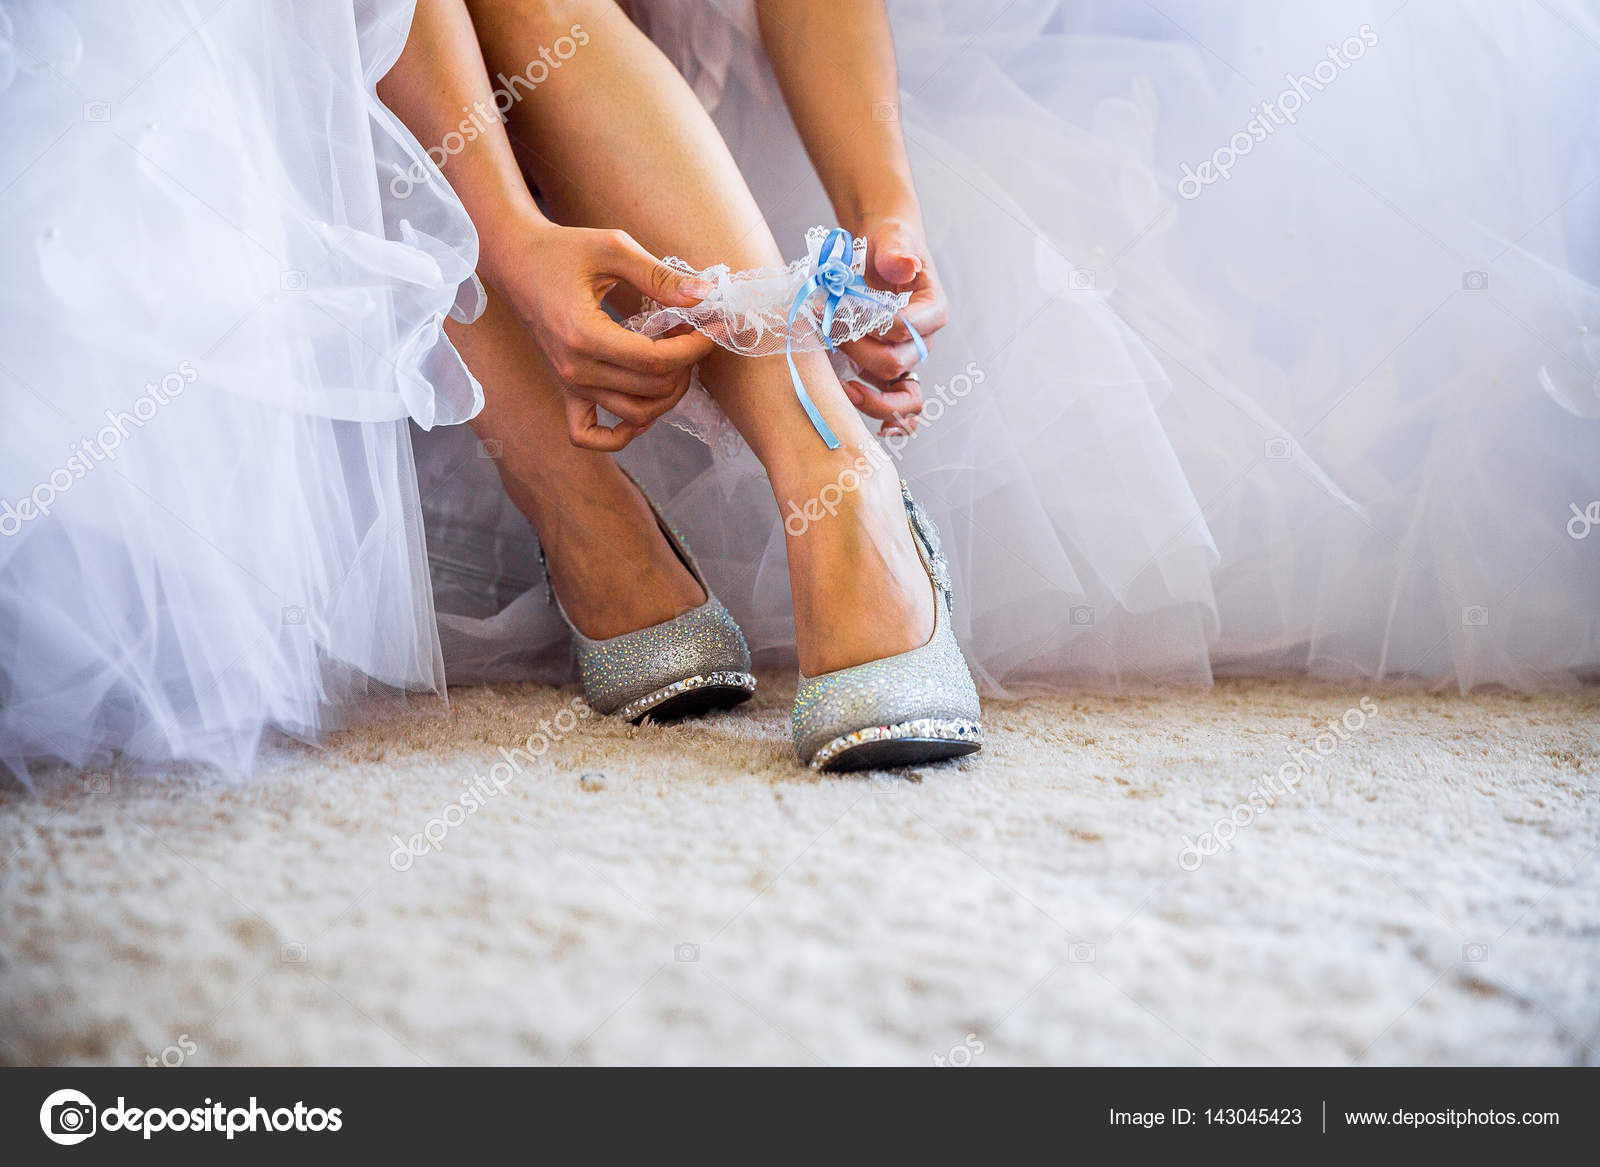 Beautiful shiny shoes standing in front of a bouquet. Callers silver shoes.  Wedding shoes bride stilettos adorned with precious stones. Bride in